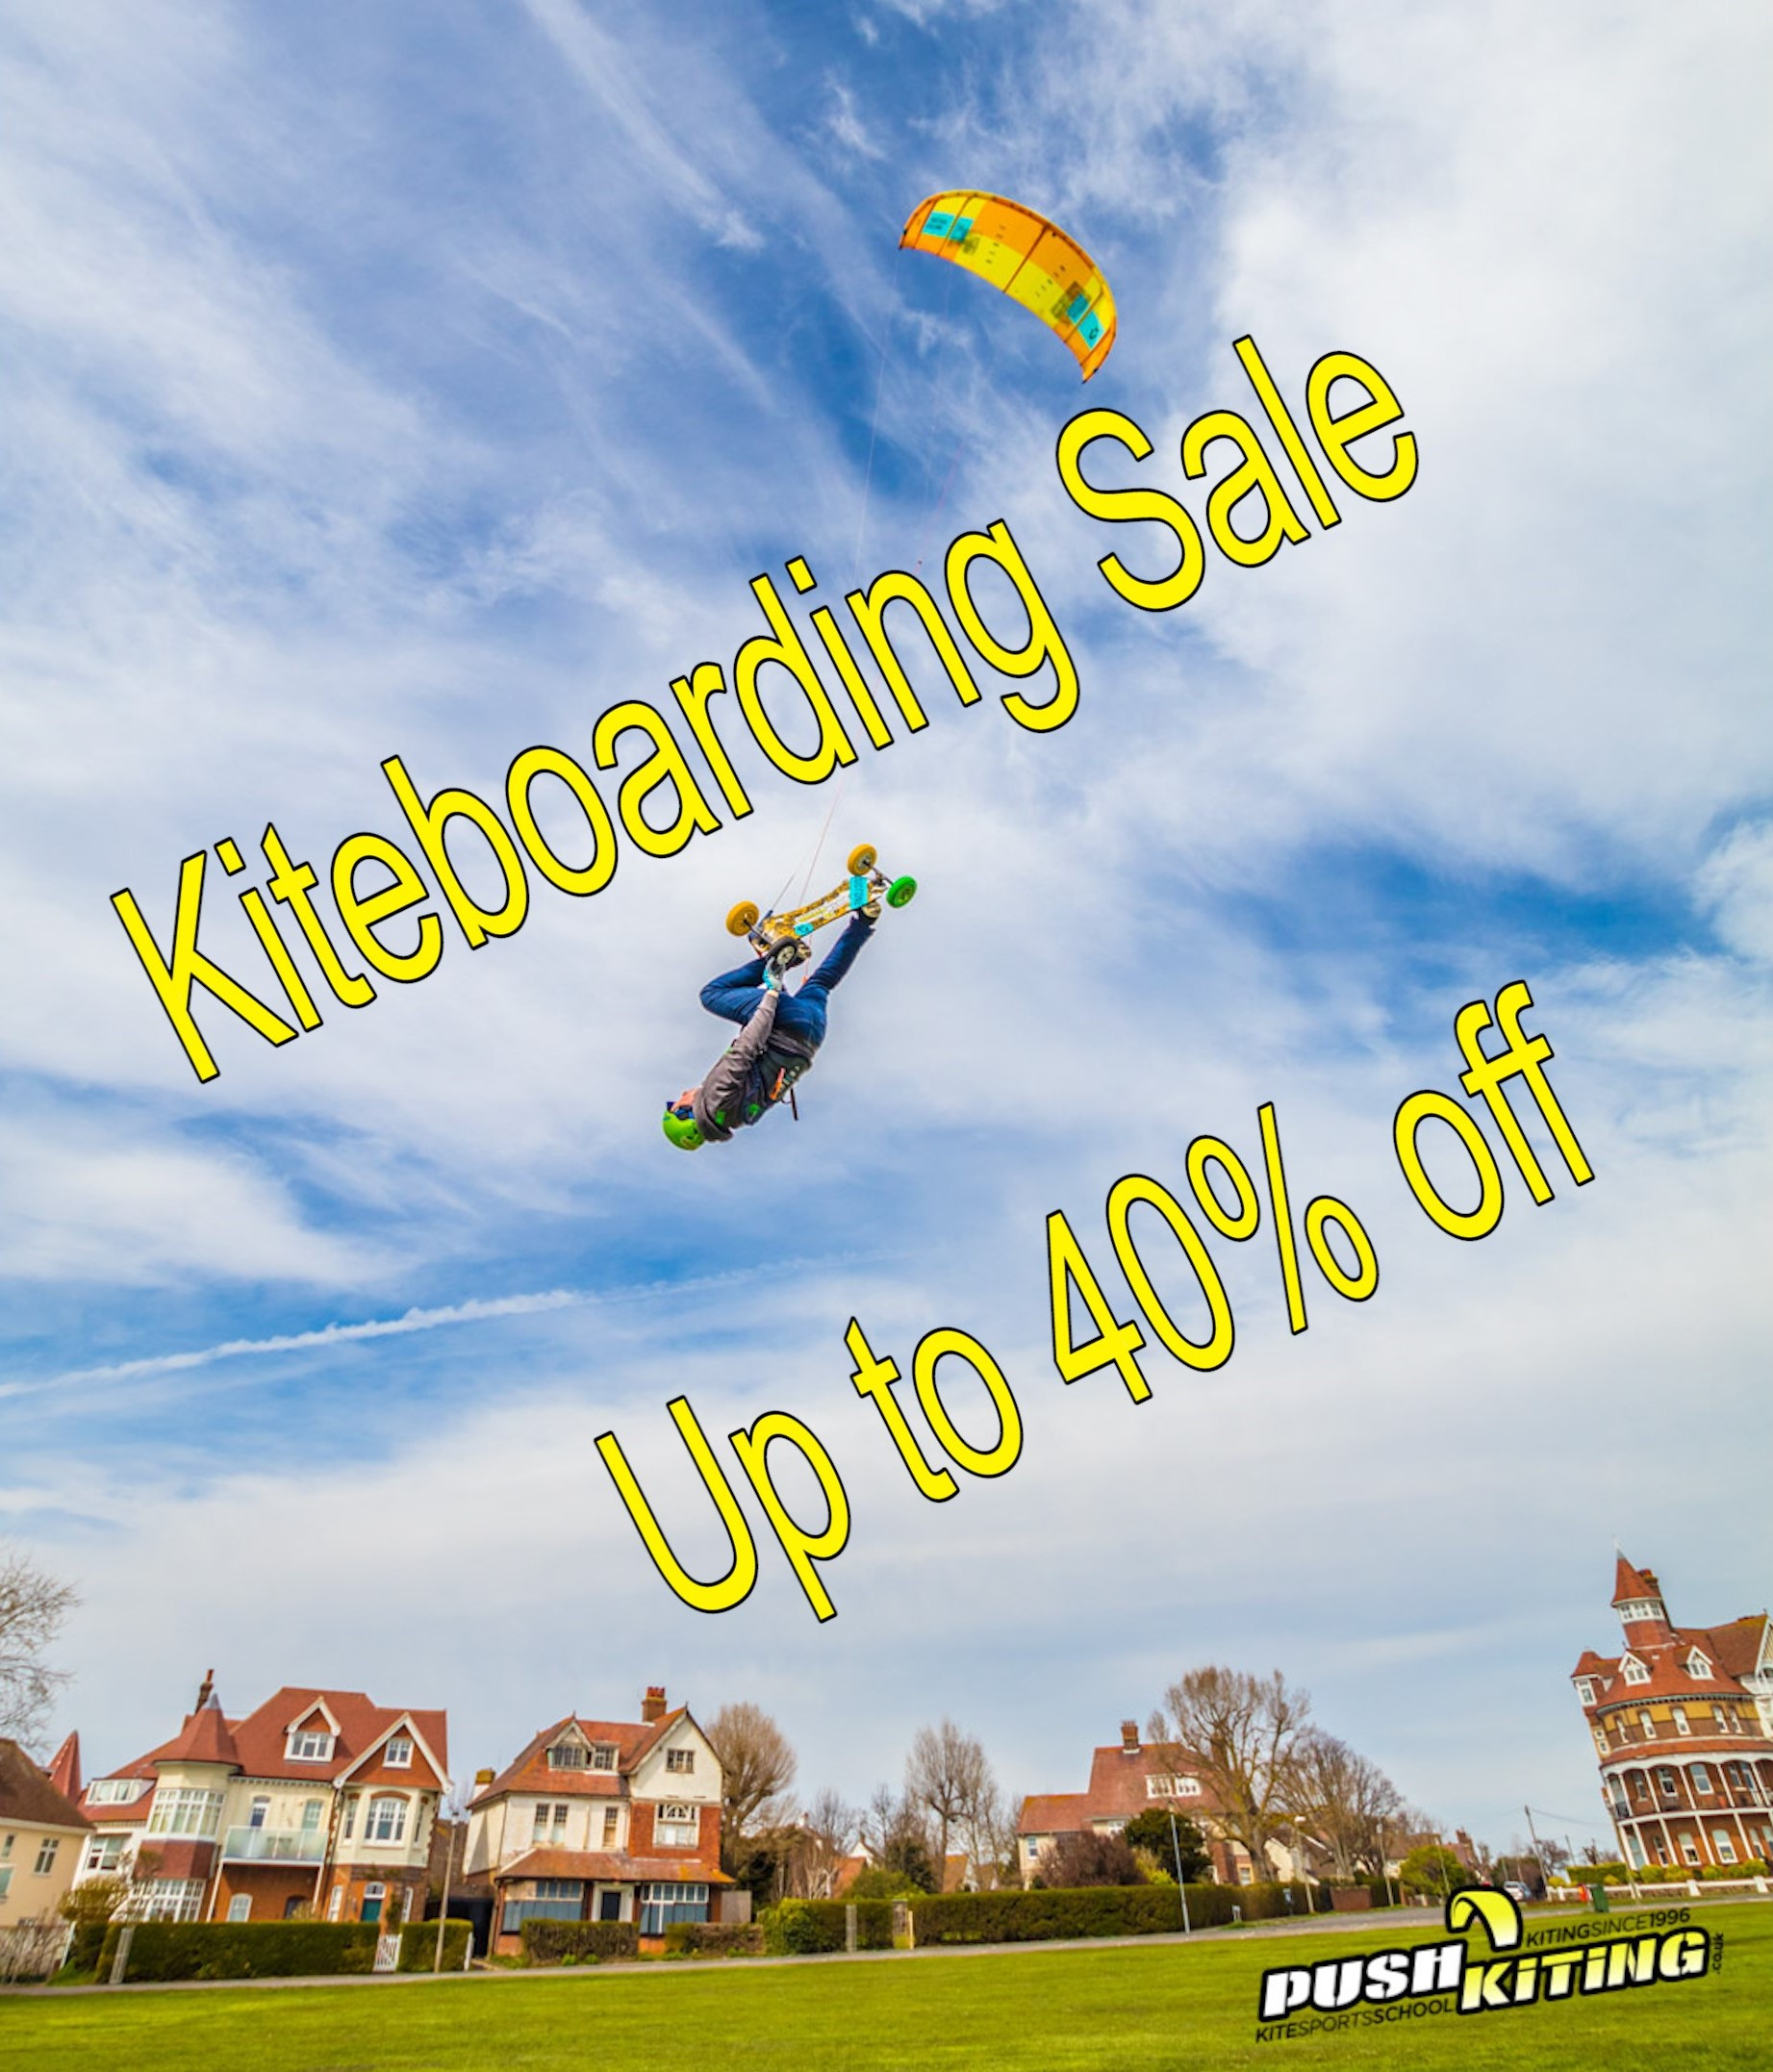 2019 Duotone Kiteboarding kitesurf gear Sale, over 30% off retail prices!